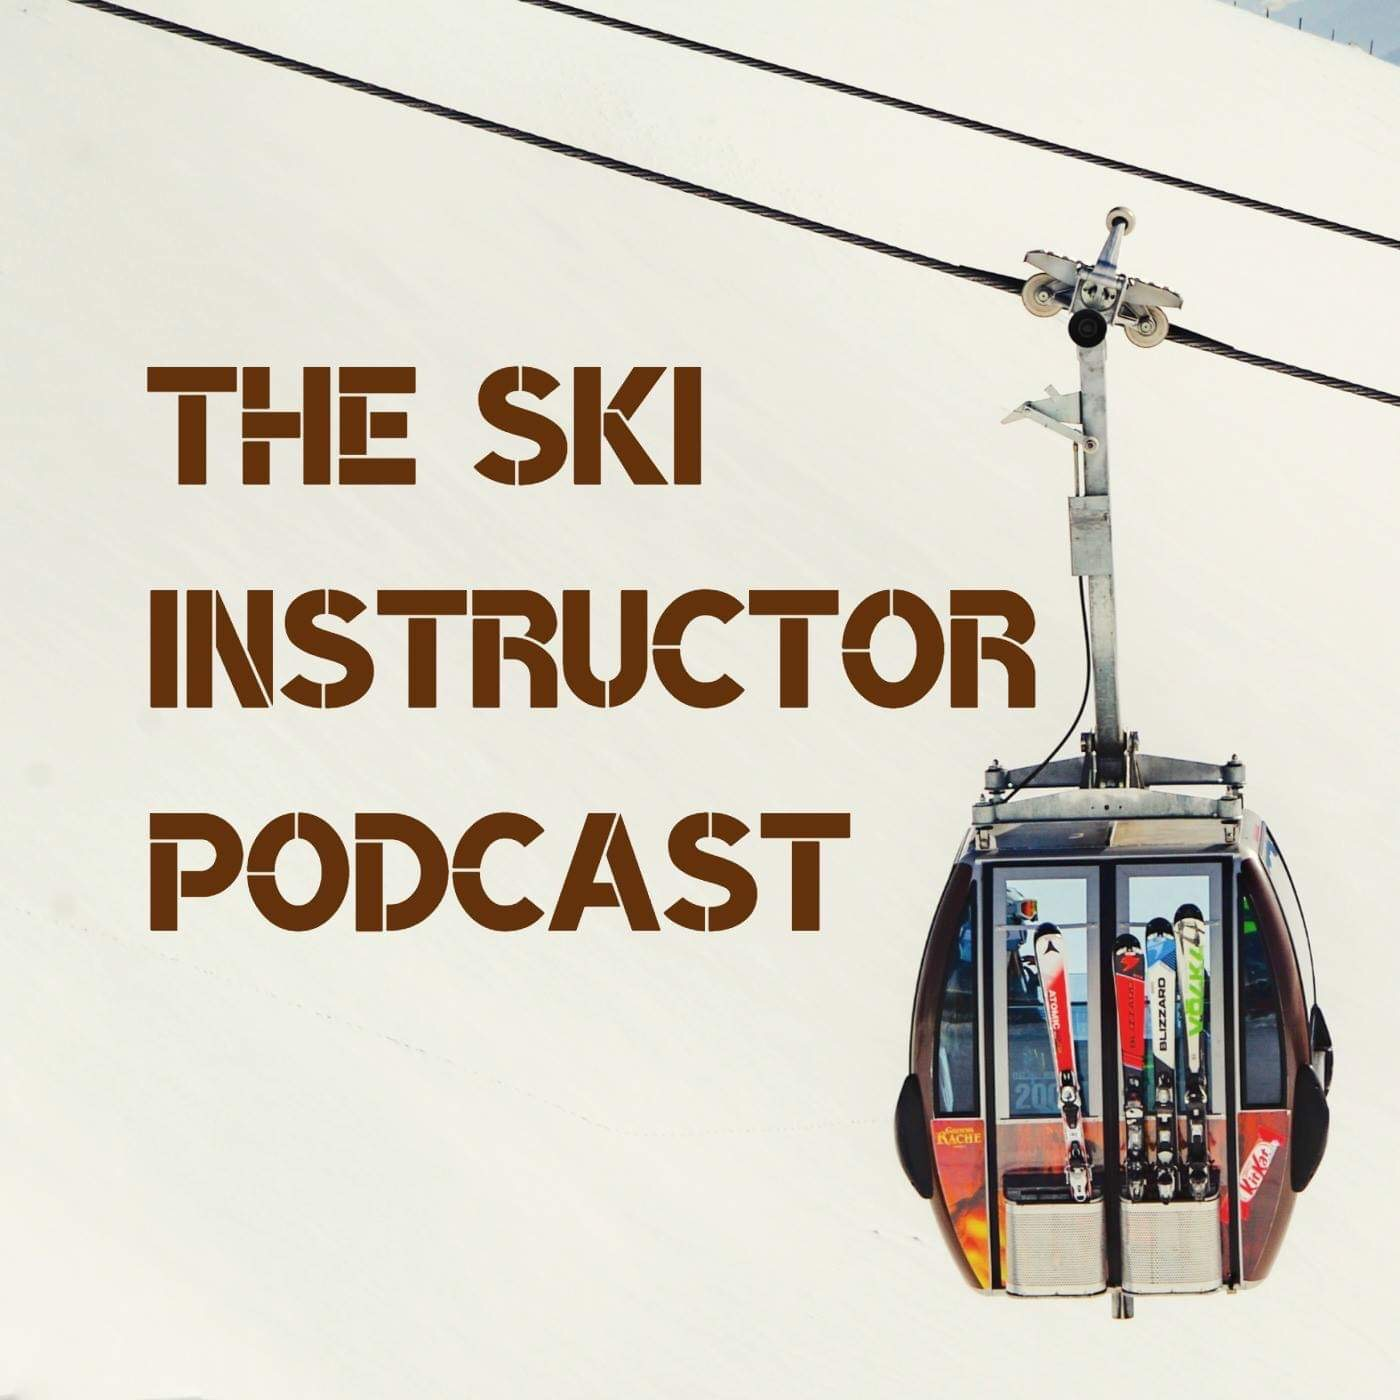 The Ski Instructor Podcast